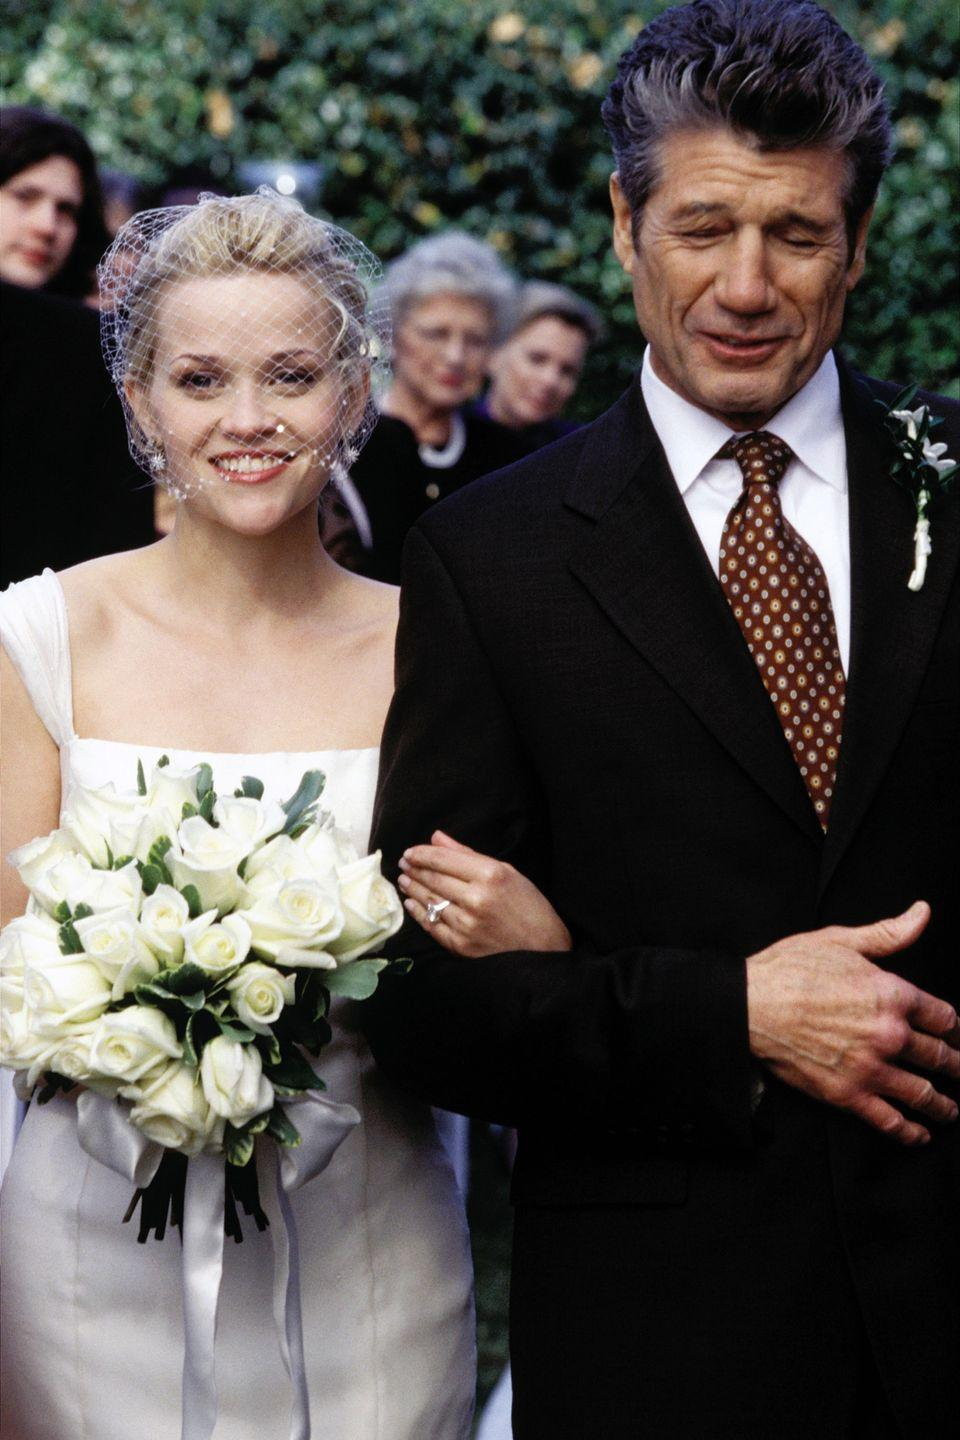 <p>In the Southern wedding of Melanie Smooter and Andrew Hennings, viewers saw Reese Witherspoon walk down the aisle in a simple cap-sleeve gown with a white bridal face net. Too bad the ceremony ended with a knockout punch, because that look was stunning.<br></p>